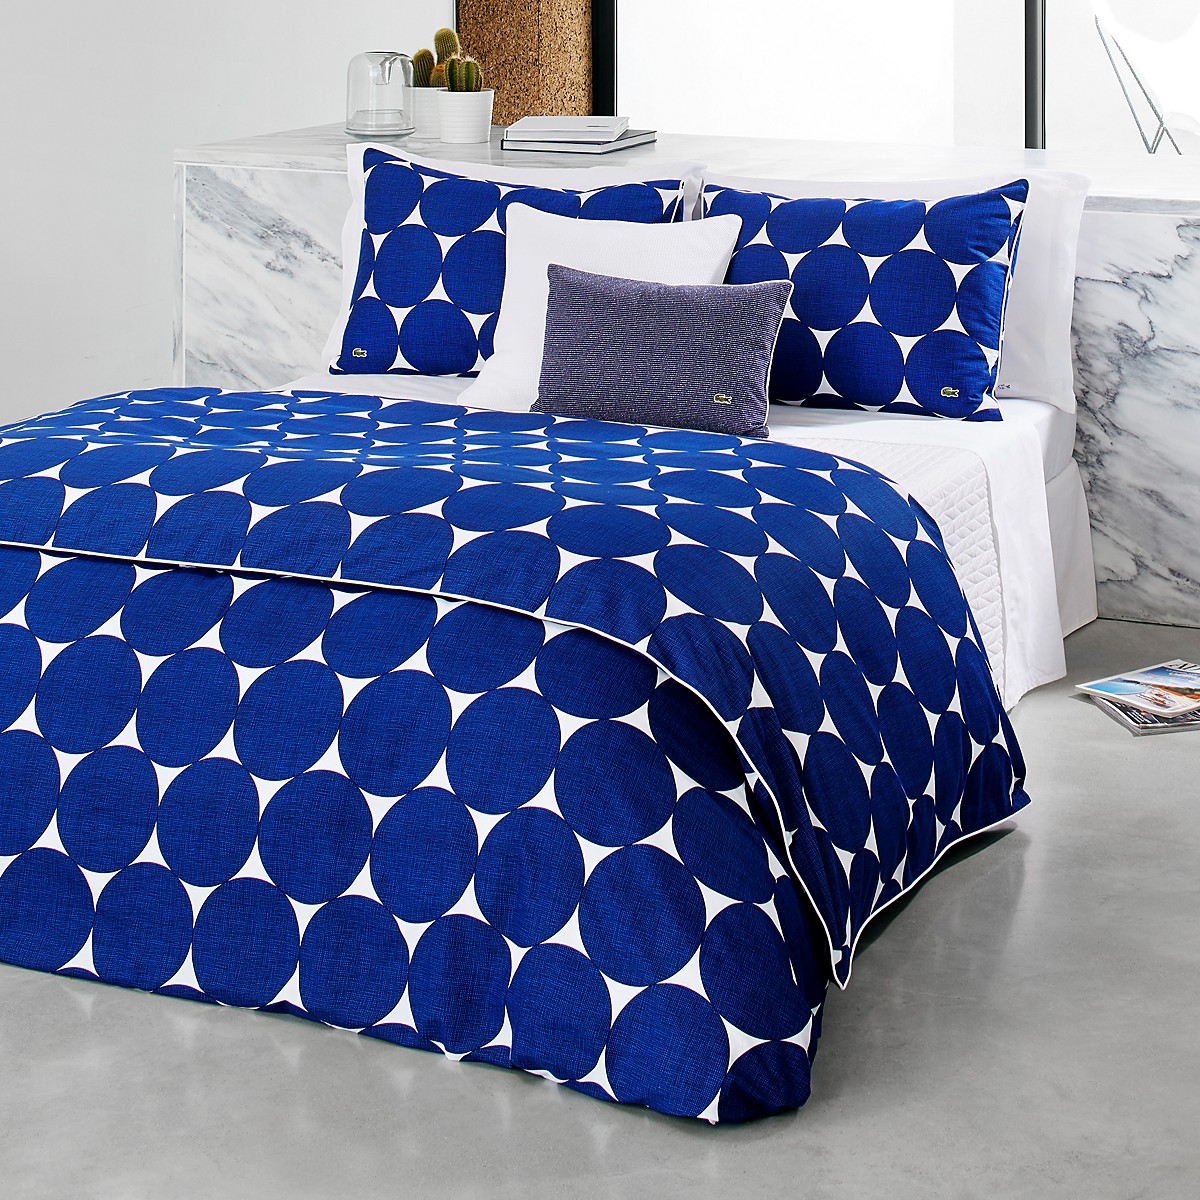 and cover washed new lacoste this style bluecollarprep vapor amazing got versatile collection with solid menswear comfy home bedding duvet we blogger gray cotton